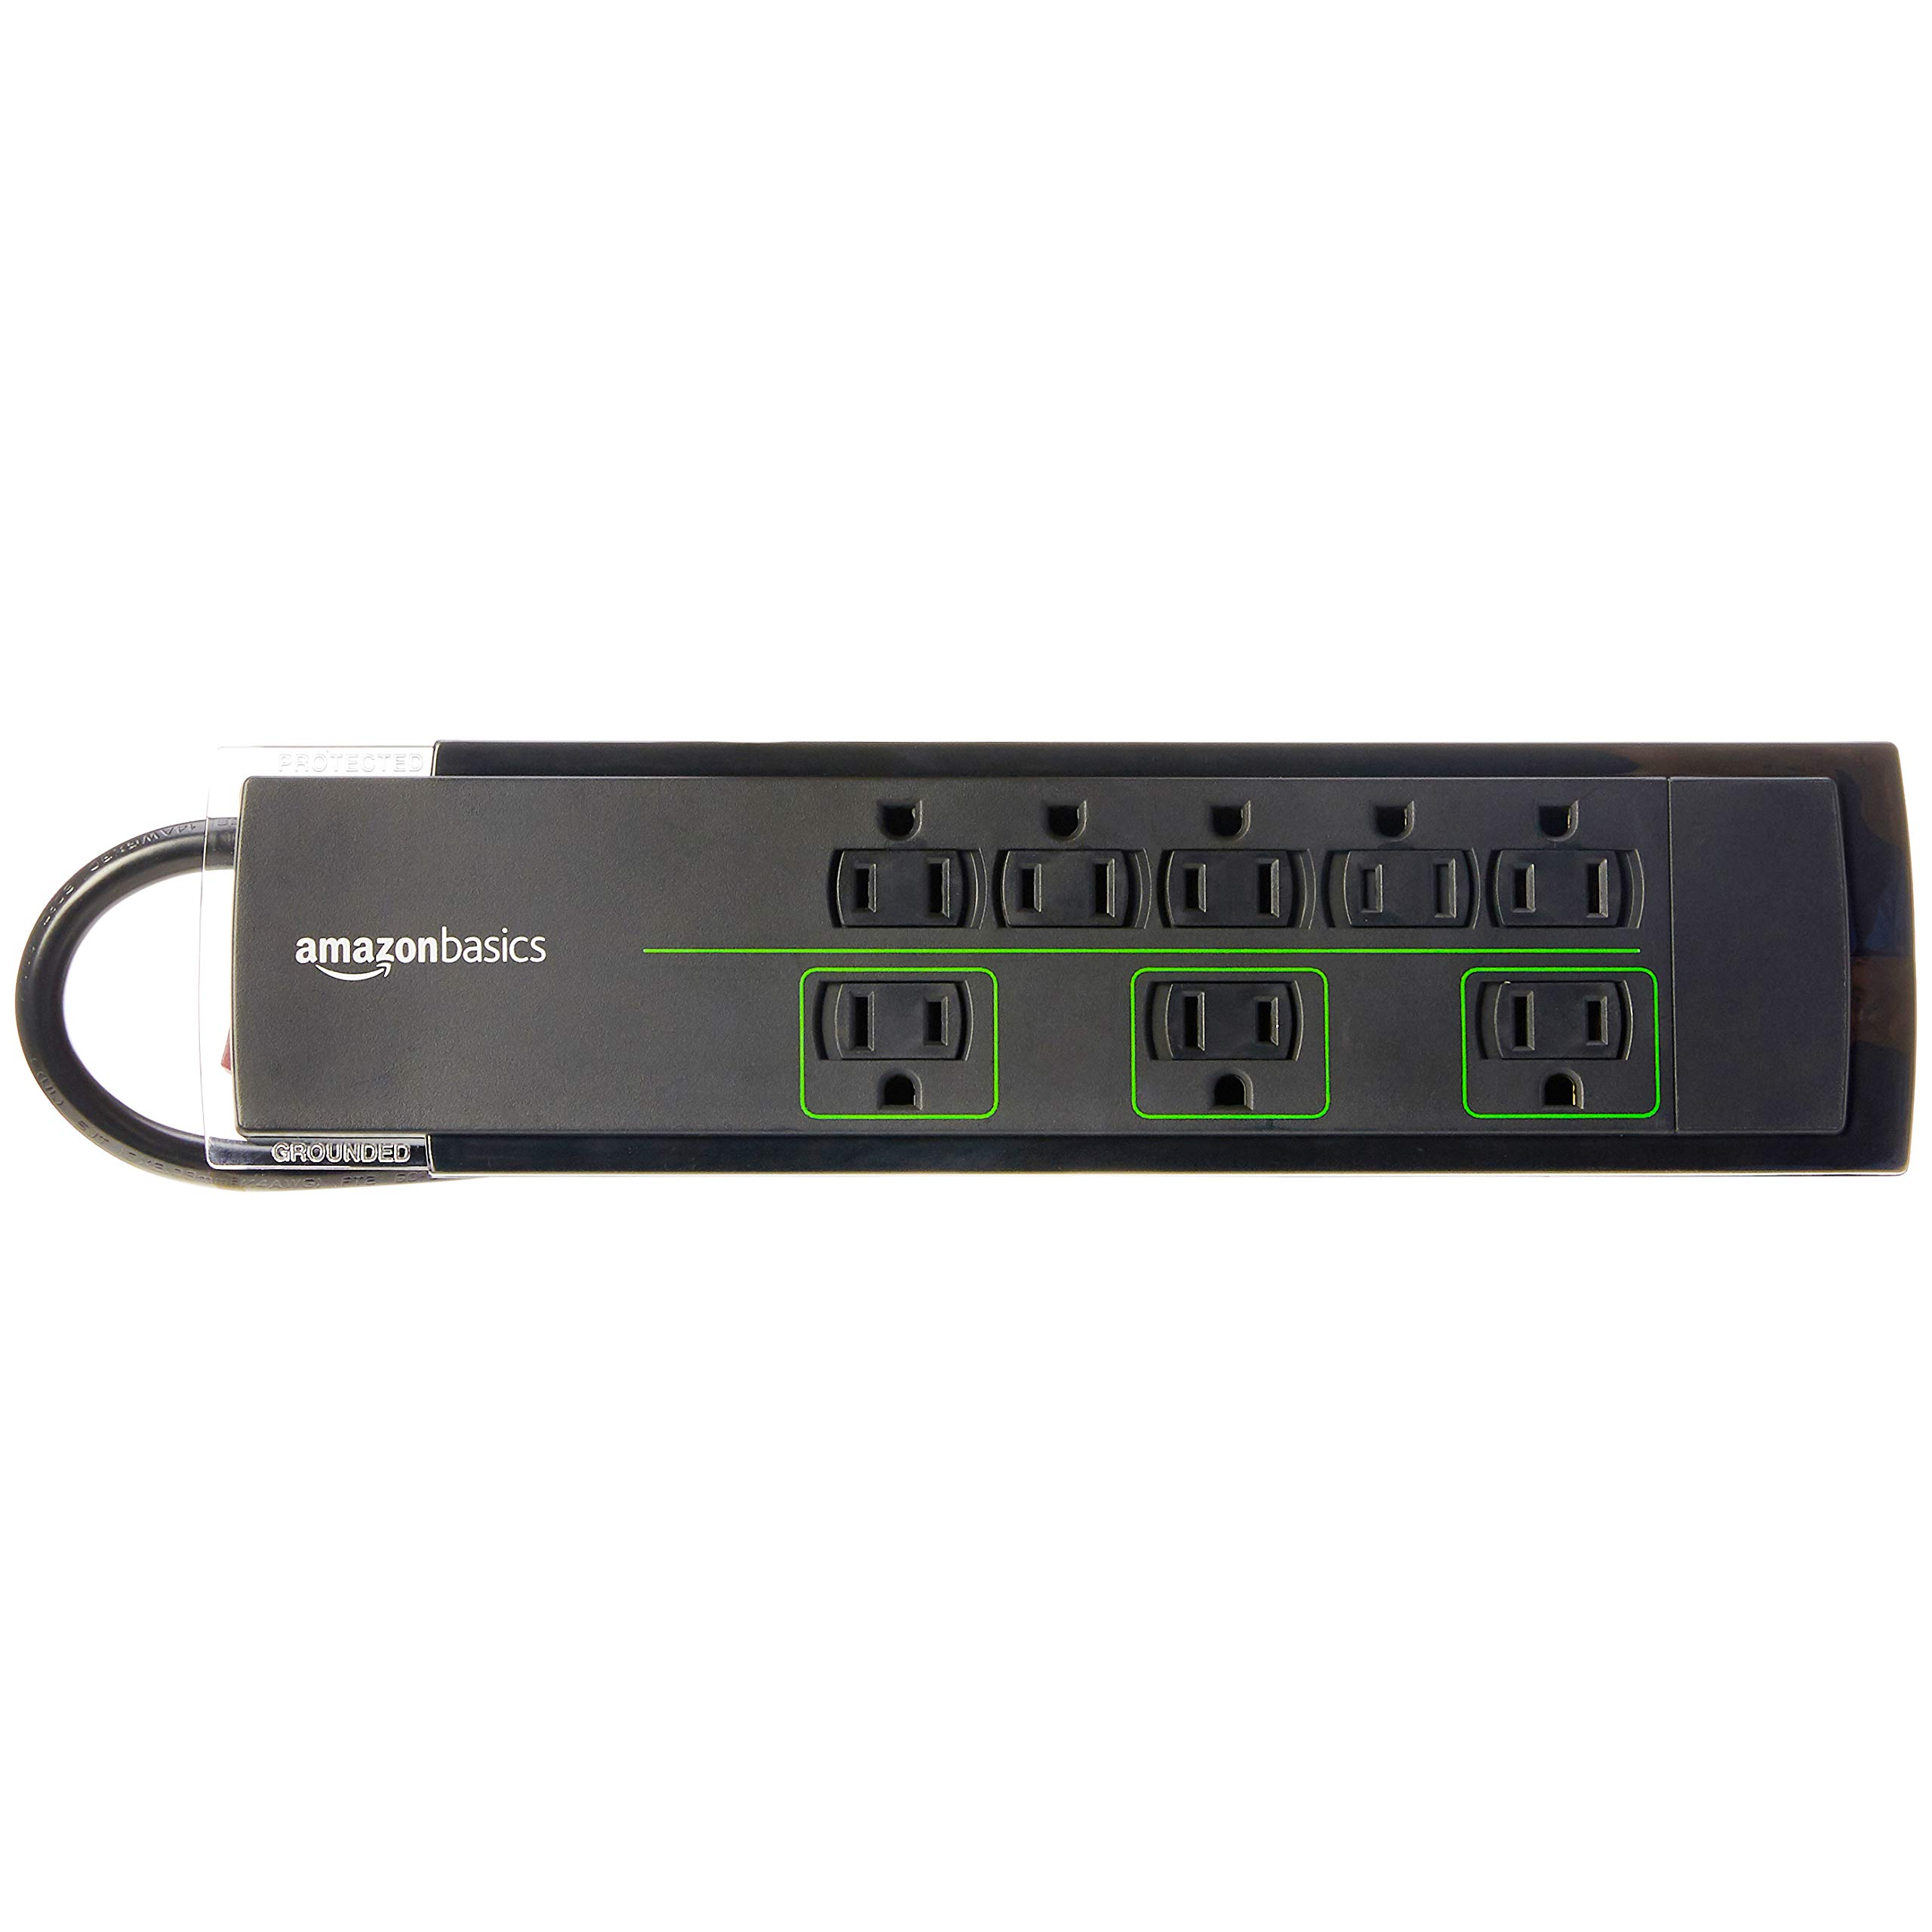 AmazonBasics 8-Outlet Power Strip Surge Protector | 4,500 Joule, 6-Foot Cord by AmazonBasics